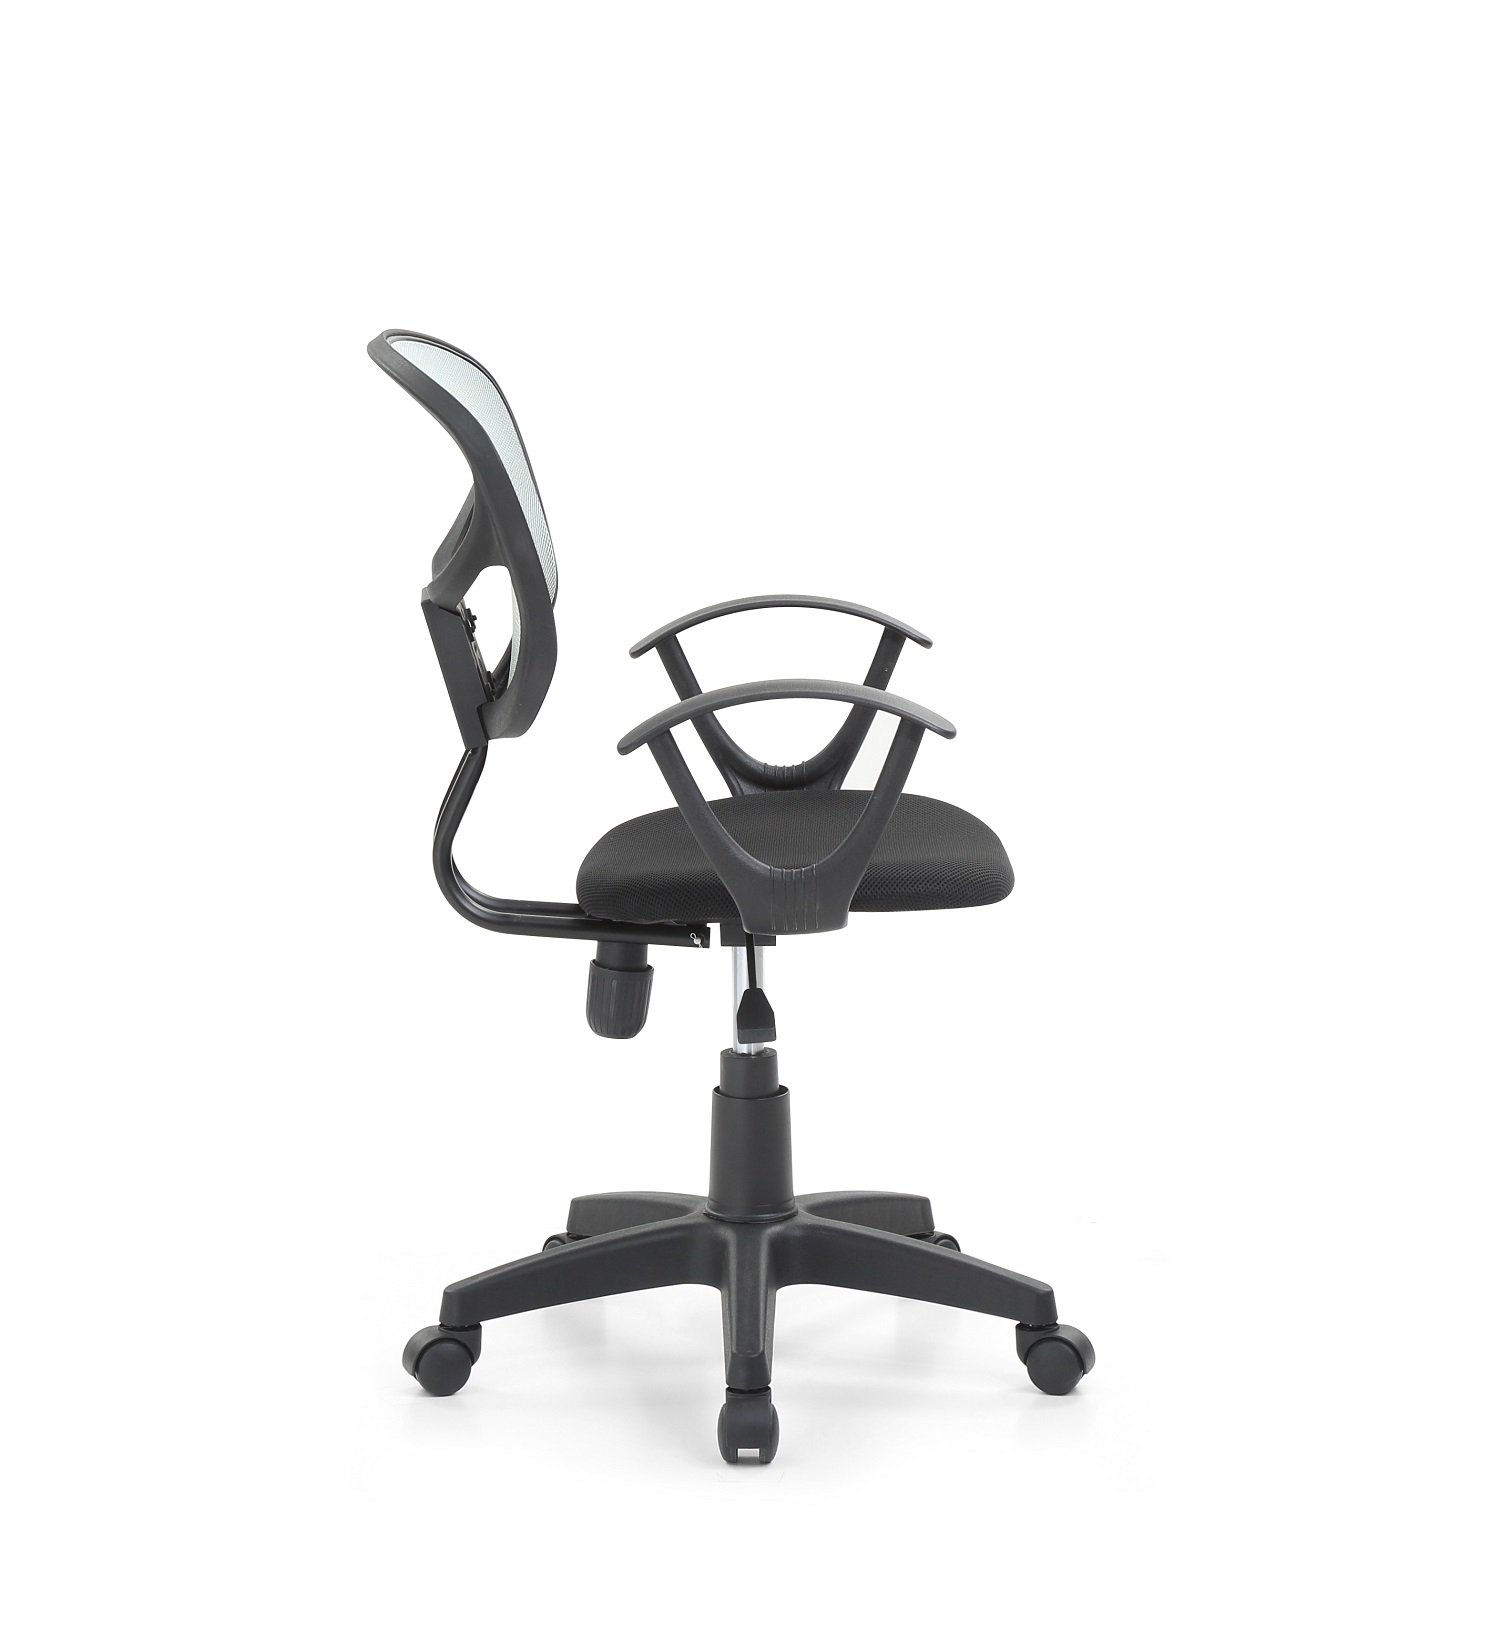 Hodedah Mesh Office Chair with Arms, Adjustable Height, and Swivel Functionality, Grey by HODEDAH IMPORT (Image #3)